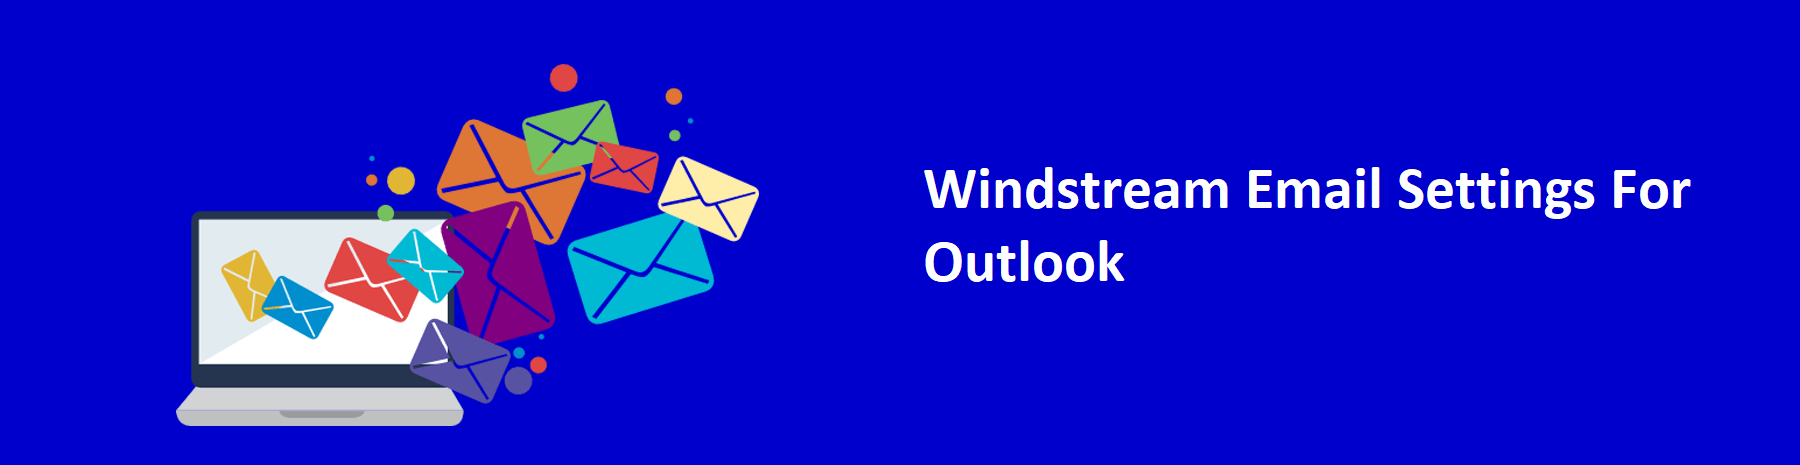 Windstream Email Settings Outlook